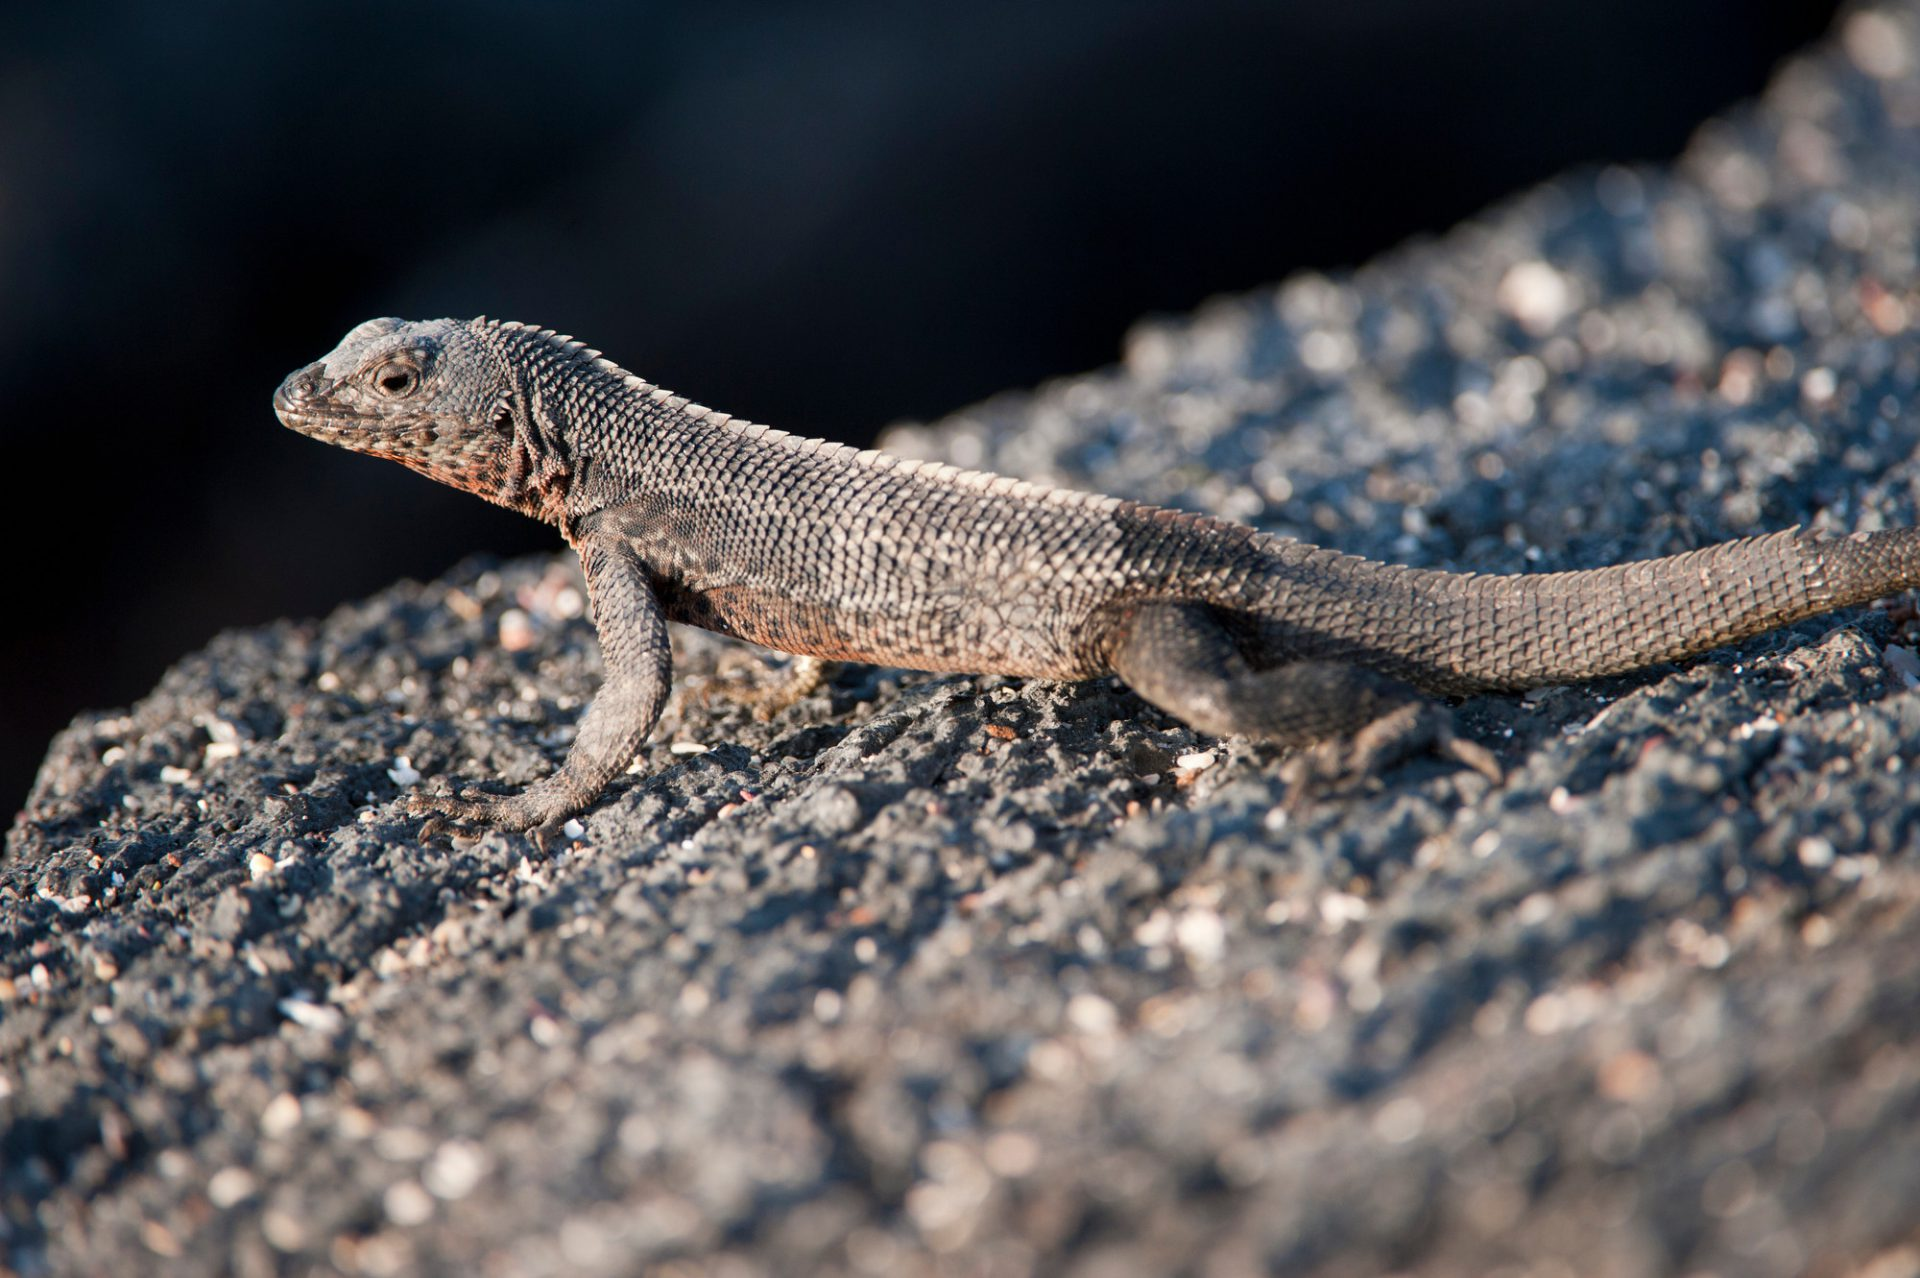 Photo: A Galapagos lava lizard (Microlophus albemarlensis) on Fernandina Island in Galapagos National Park.